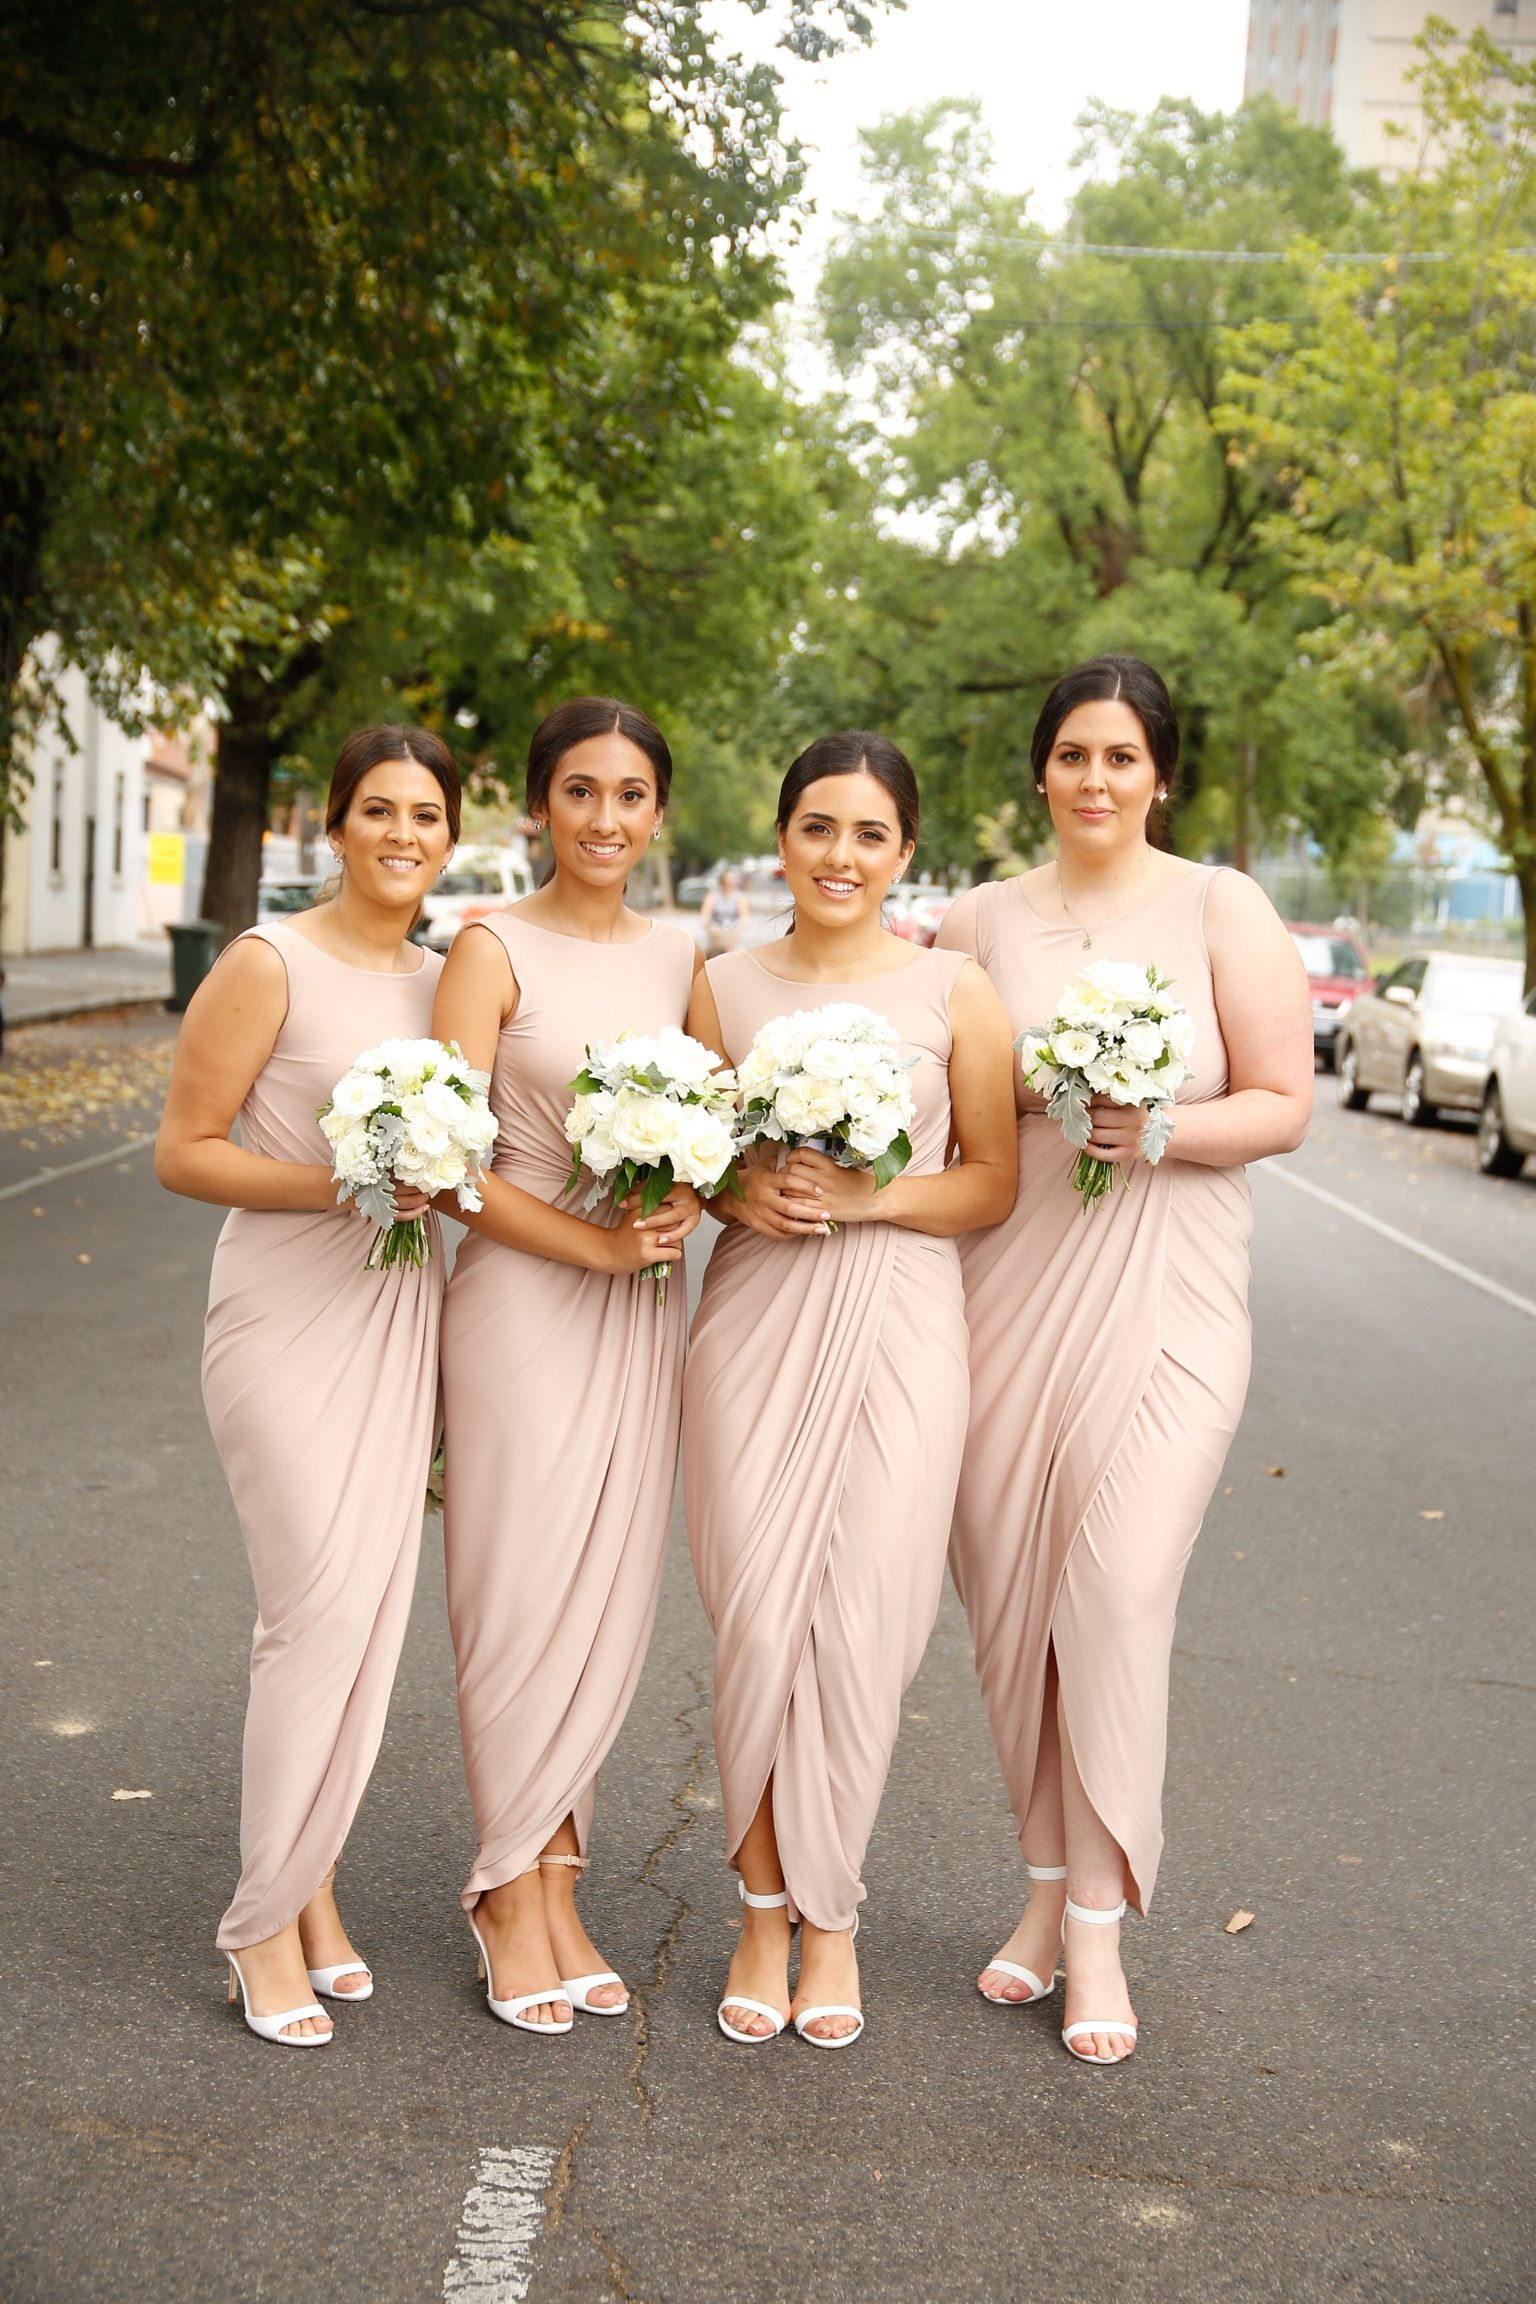 Our beautiful melbourne bride jeanette chose the bessy dress in shop stylish bridesmaids dresses online from our range of australian designers bridesmaid dresses engagement dresses prom dresses and bachelorette ombrellifo Choice Image